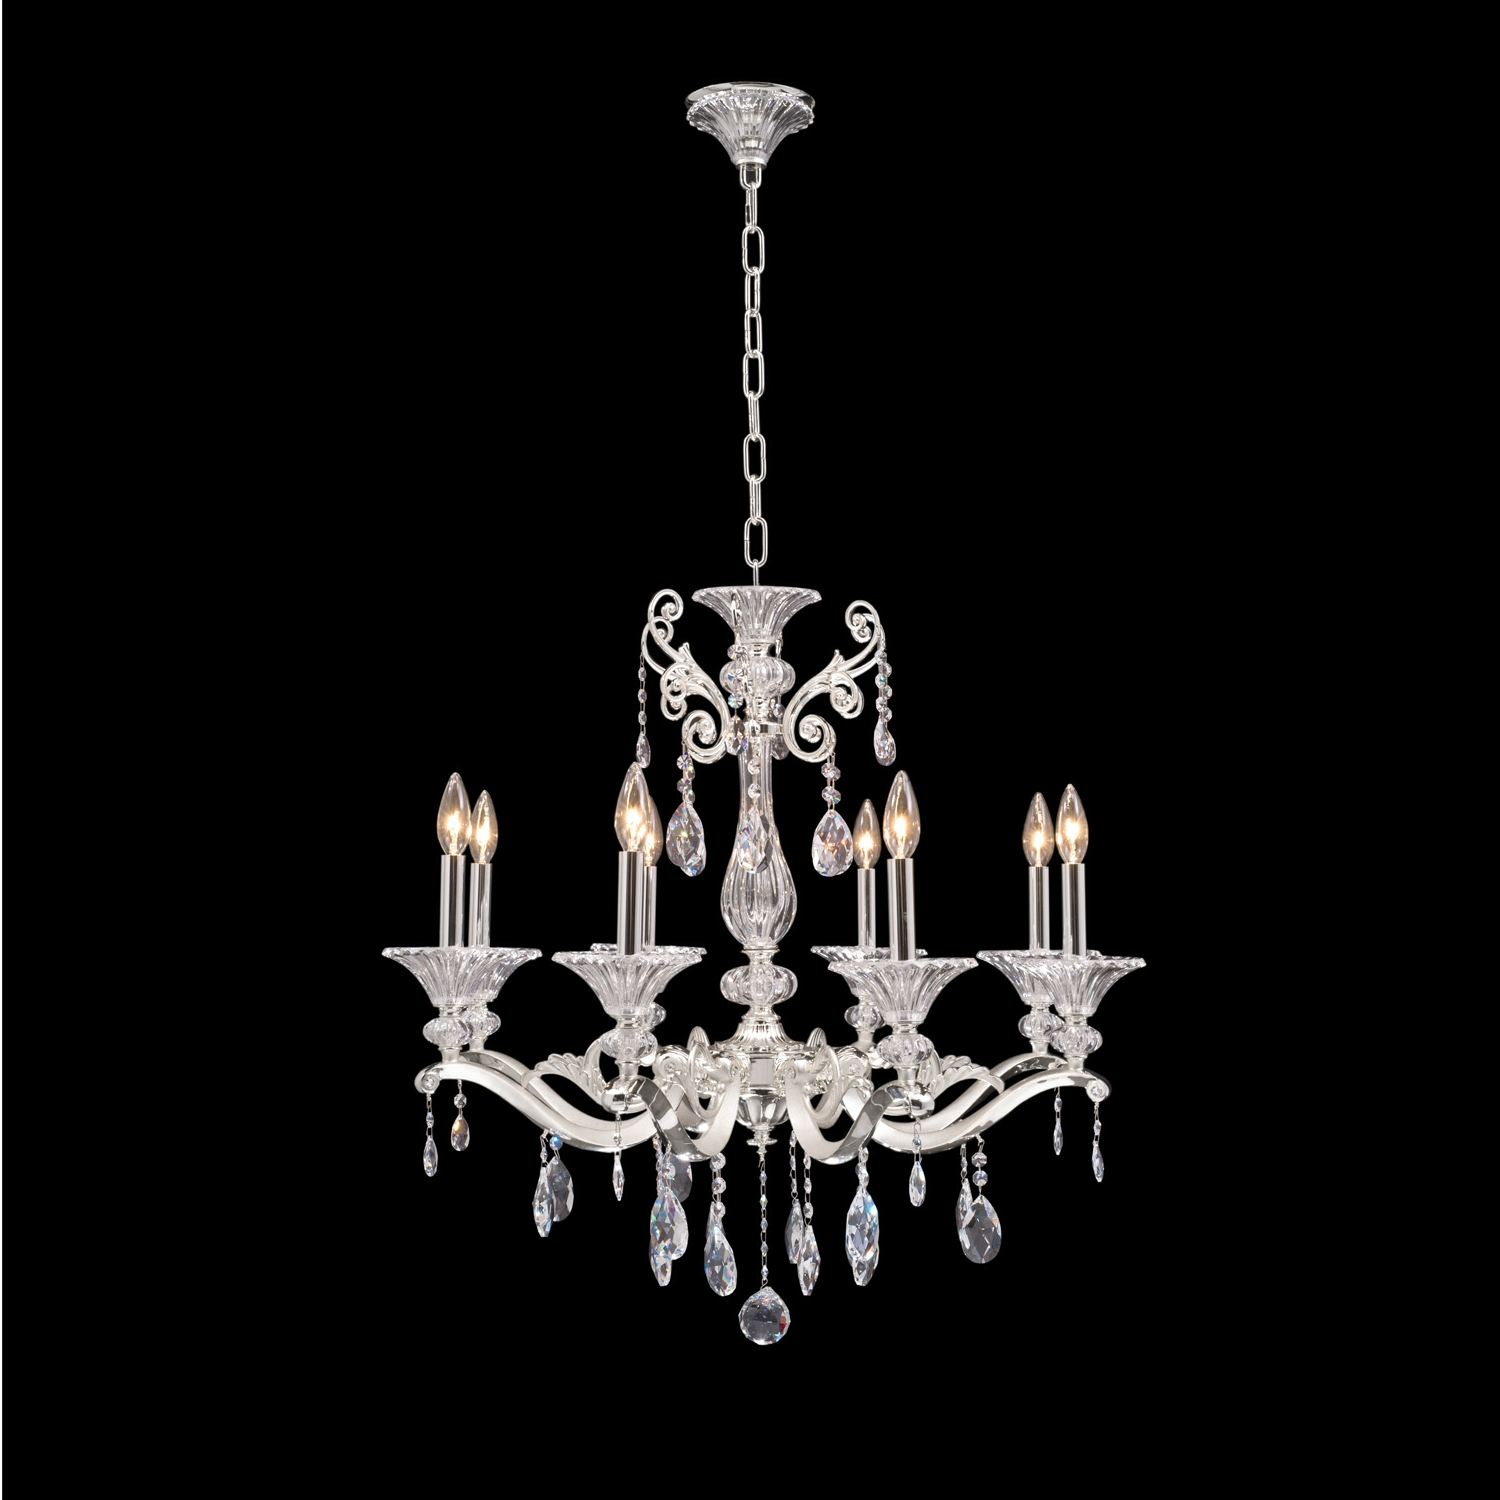 Vasari 8 Light Chandelier